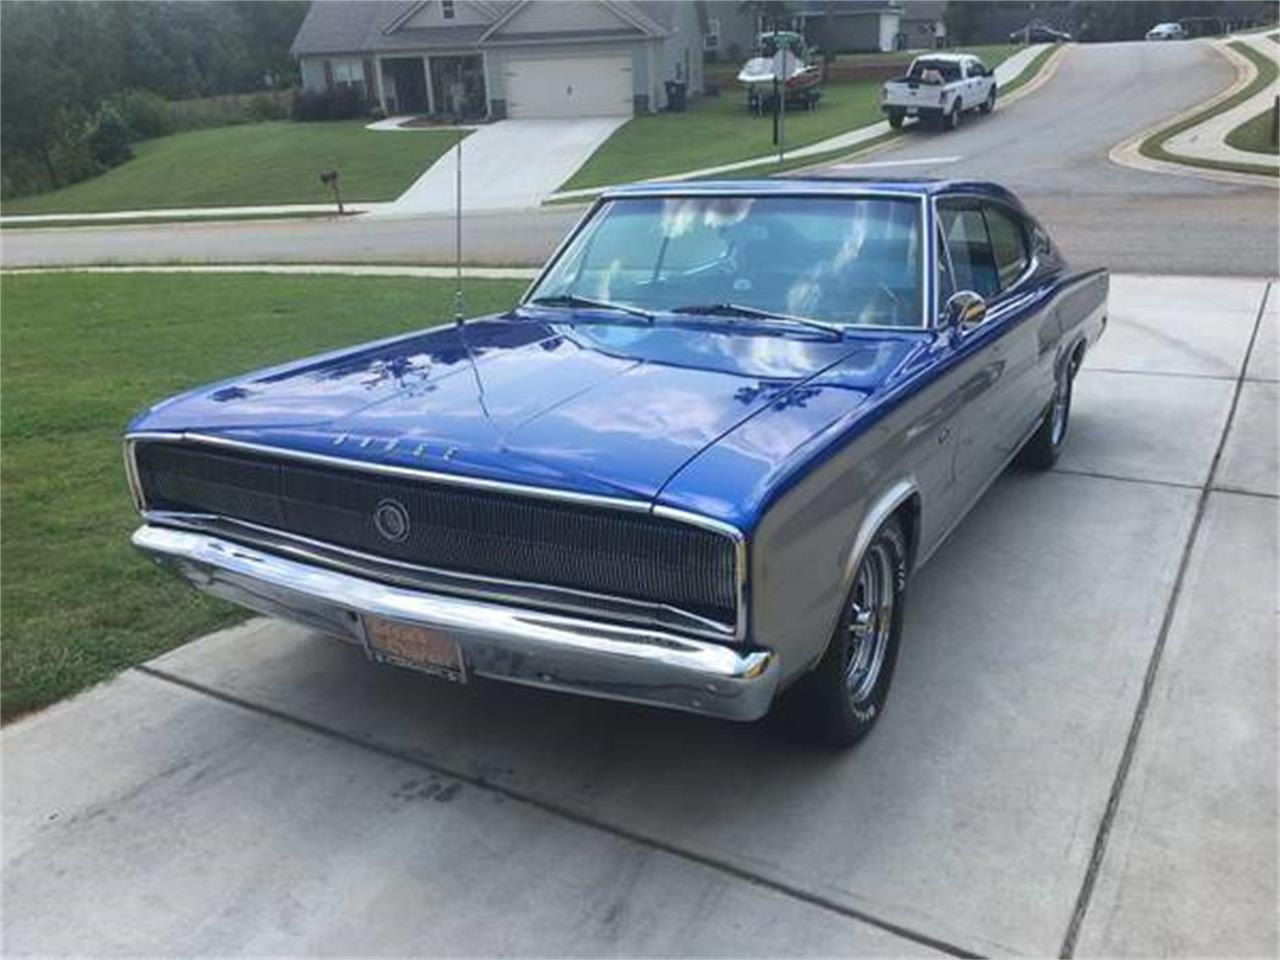 Large Picture of Classic 1966 Dodge Charger located in New York - $42,000.00 Offered by DP9 Motorsports - PRJP